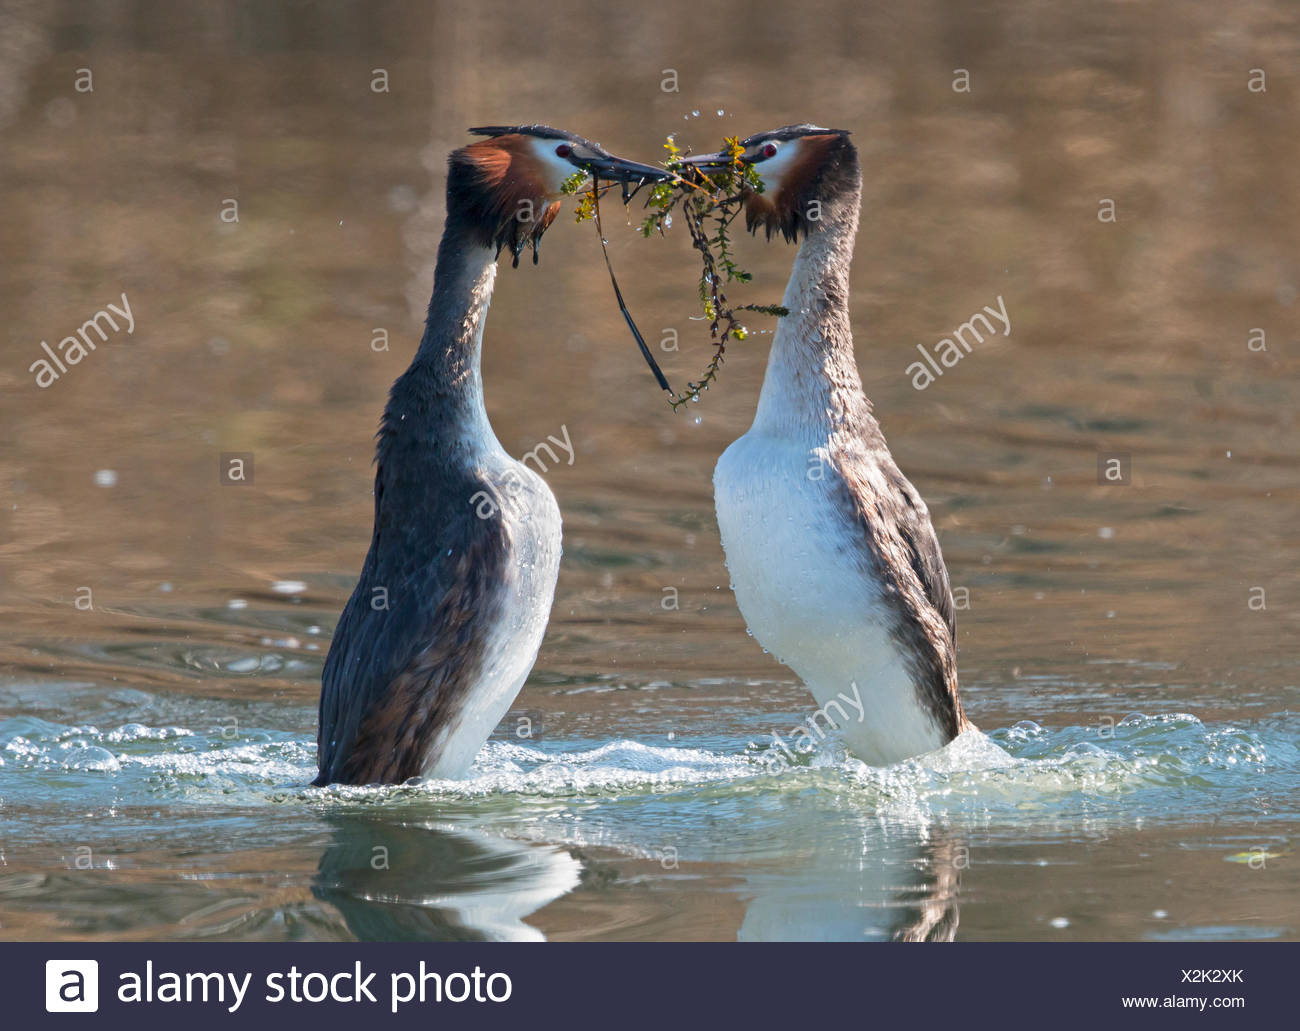 Great Crested Grebes displaying on the water - Switzerland - Stock Image